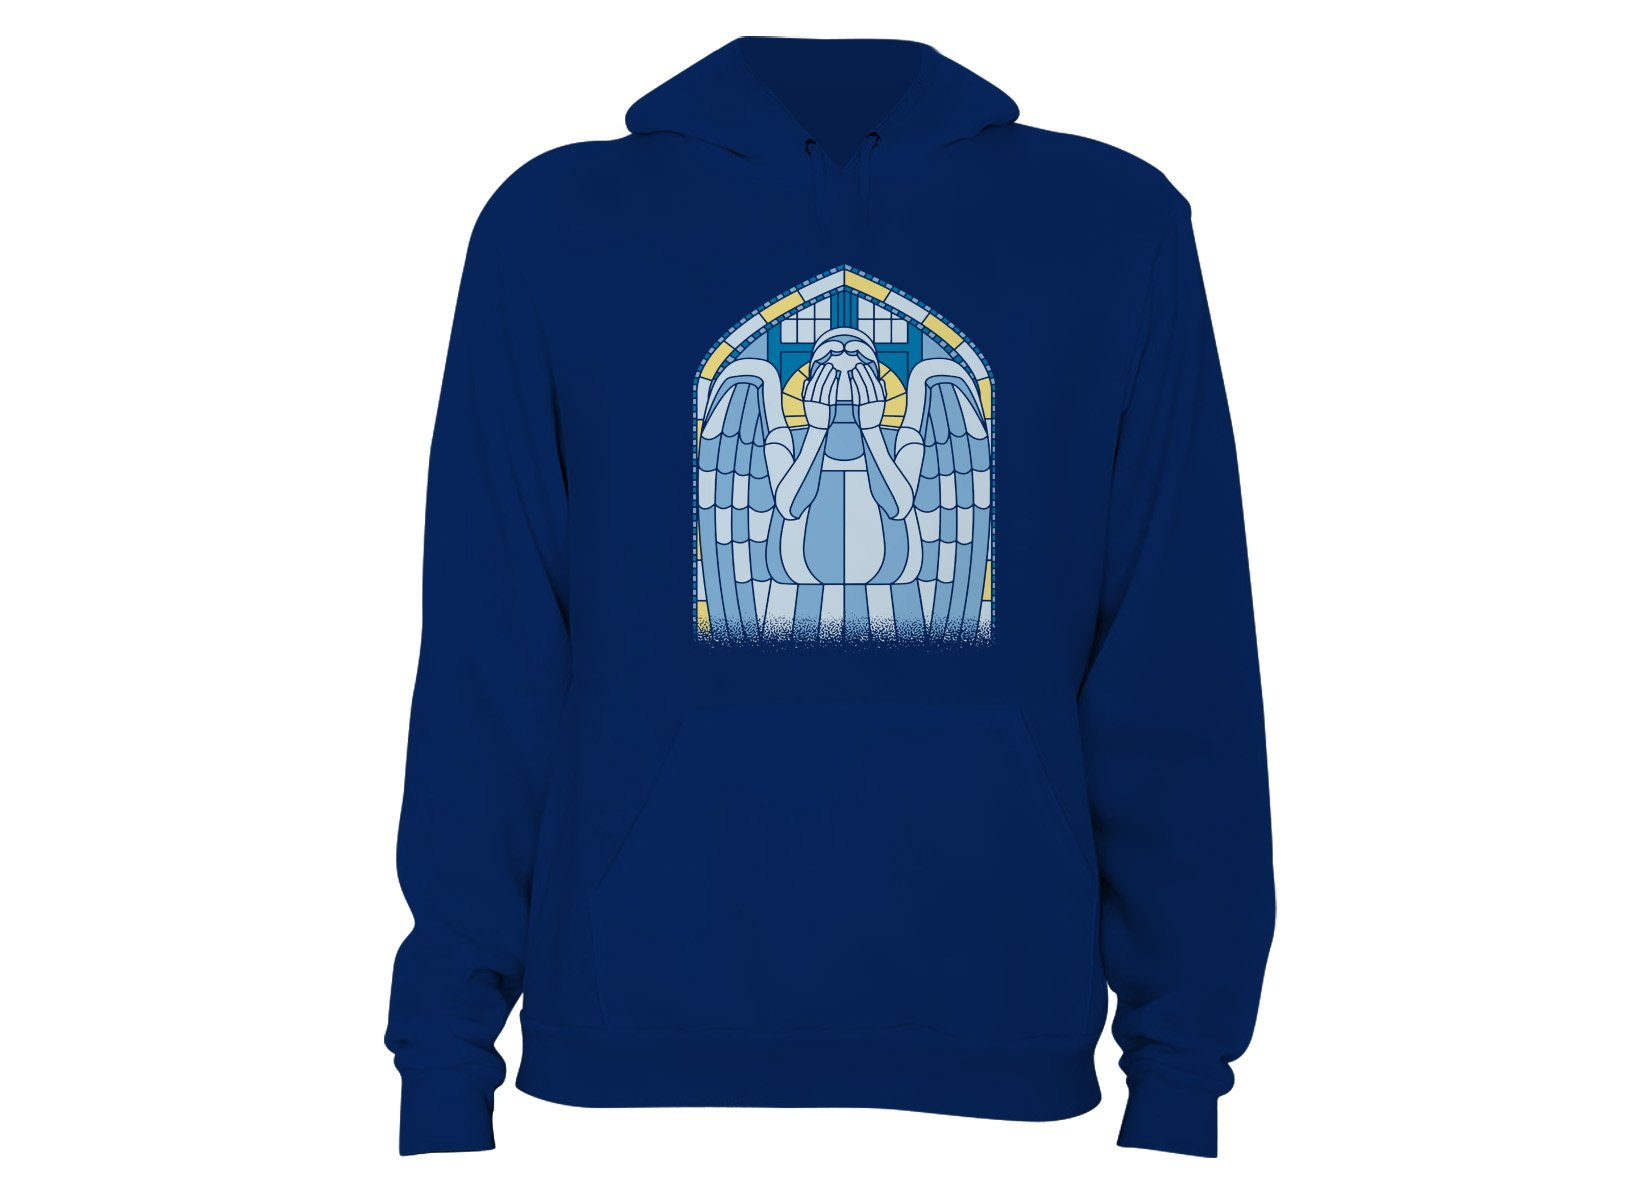 Weeping Angel on Hoodie